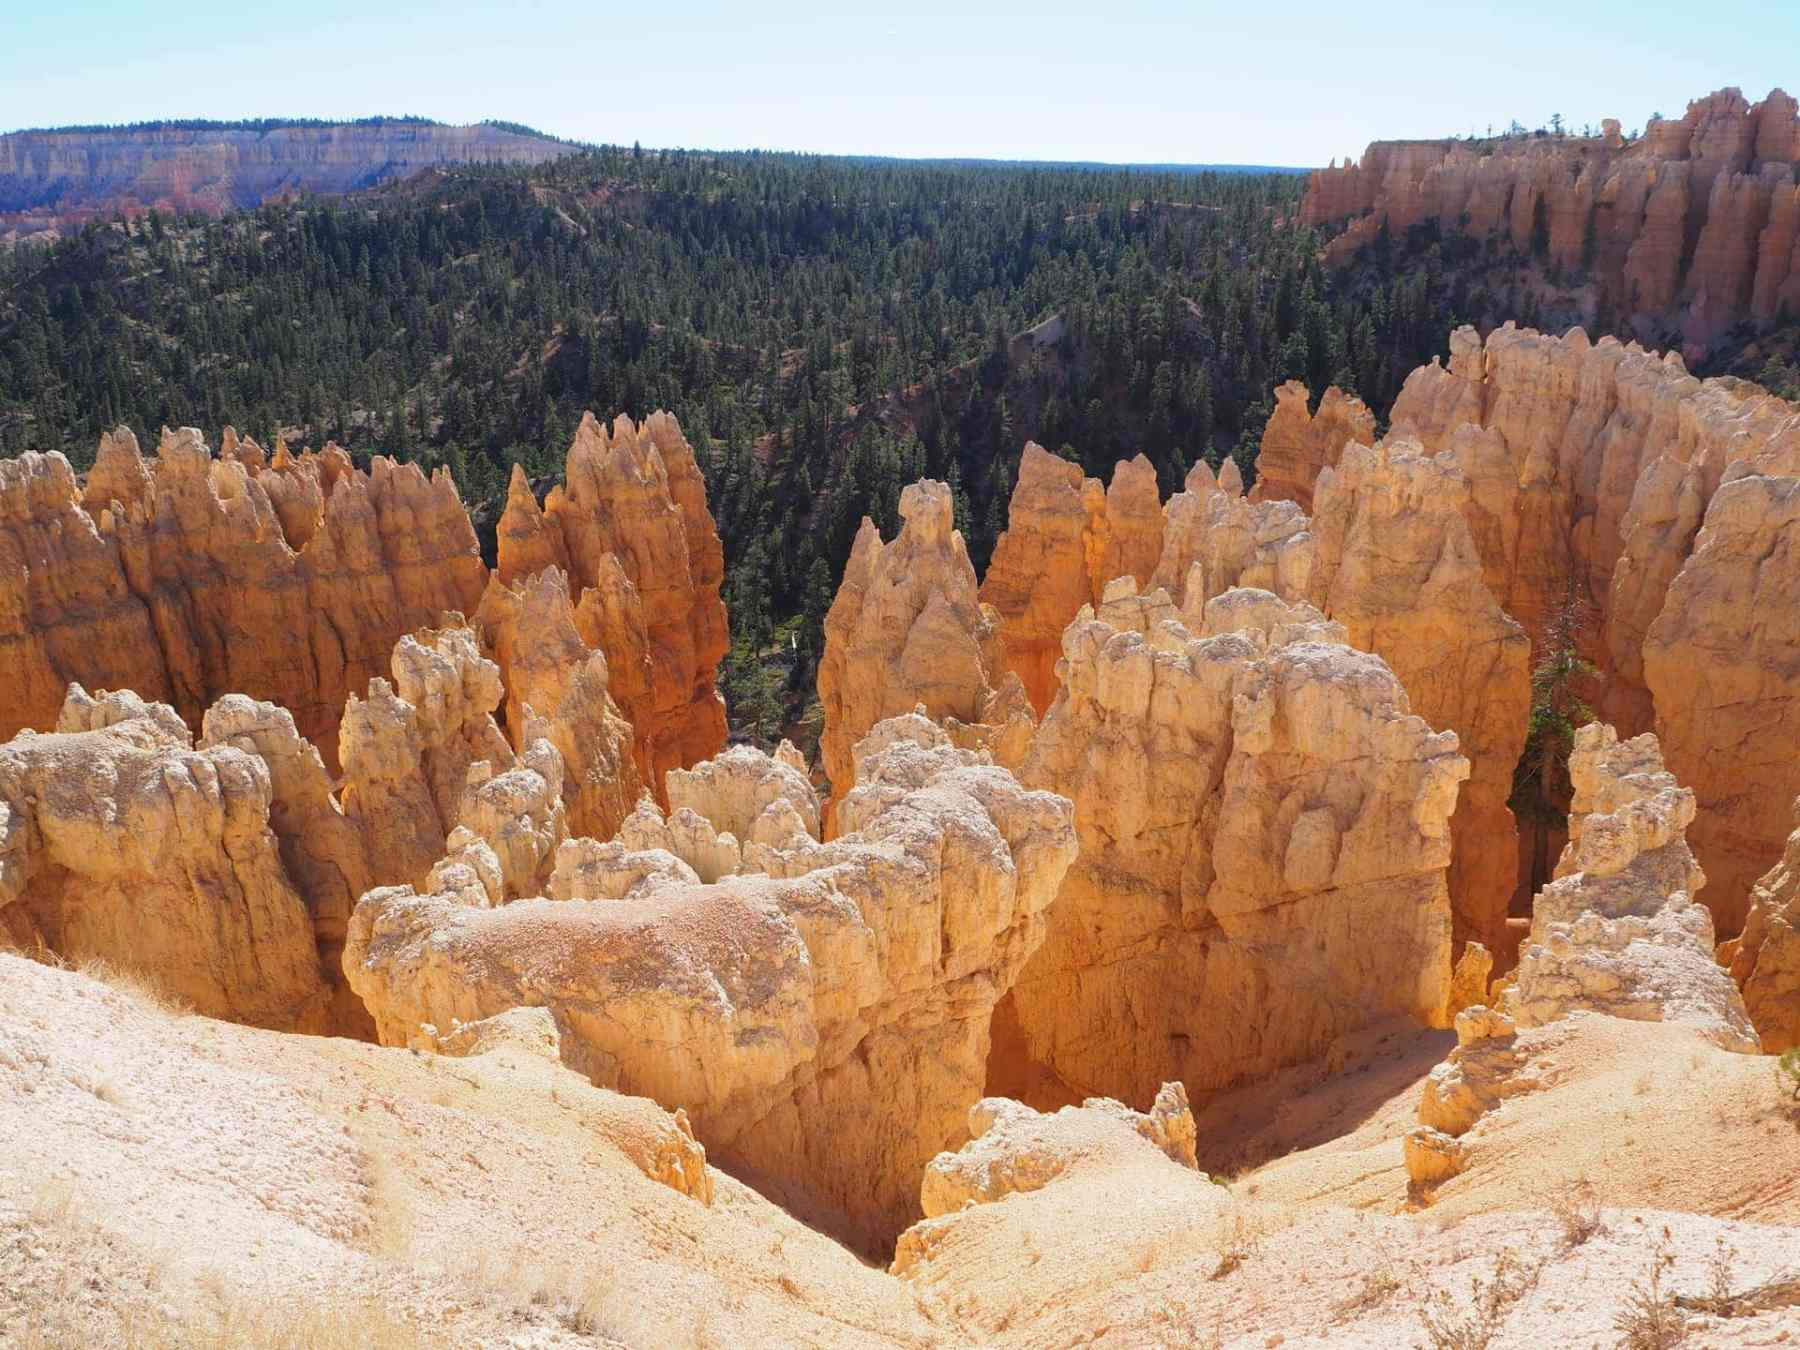 looking down into the hoodoos